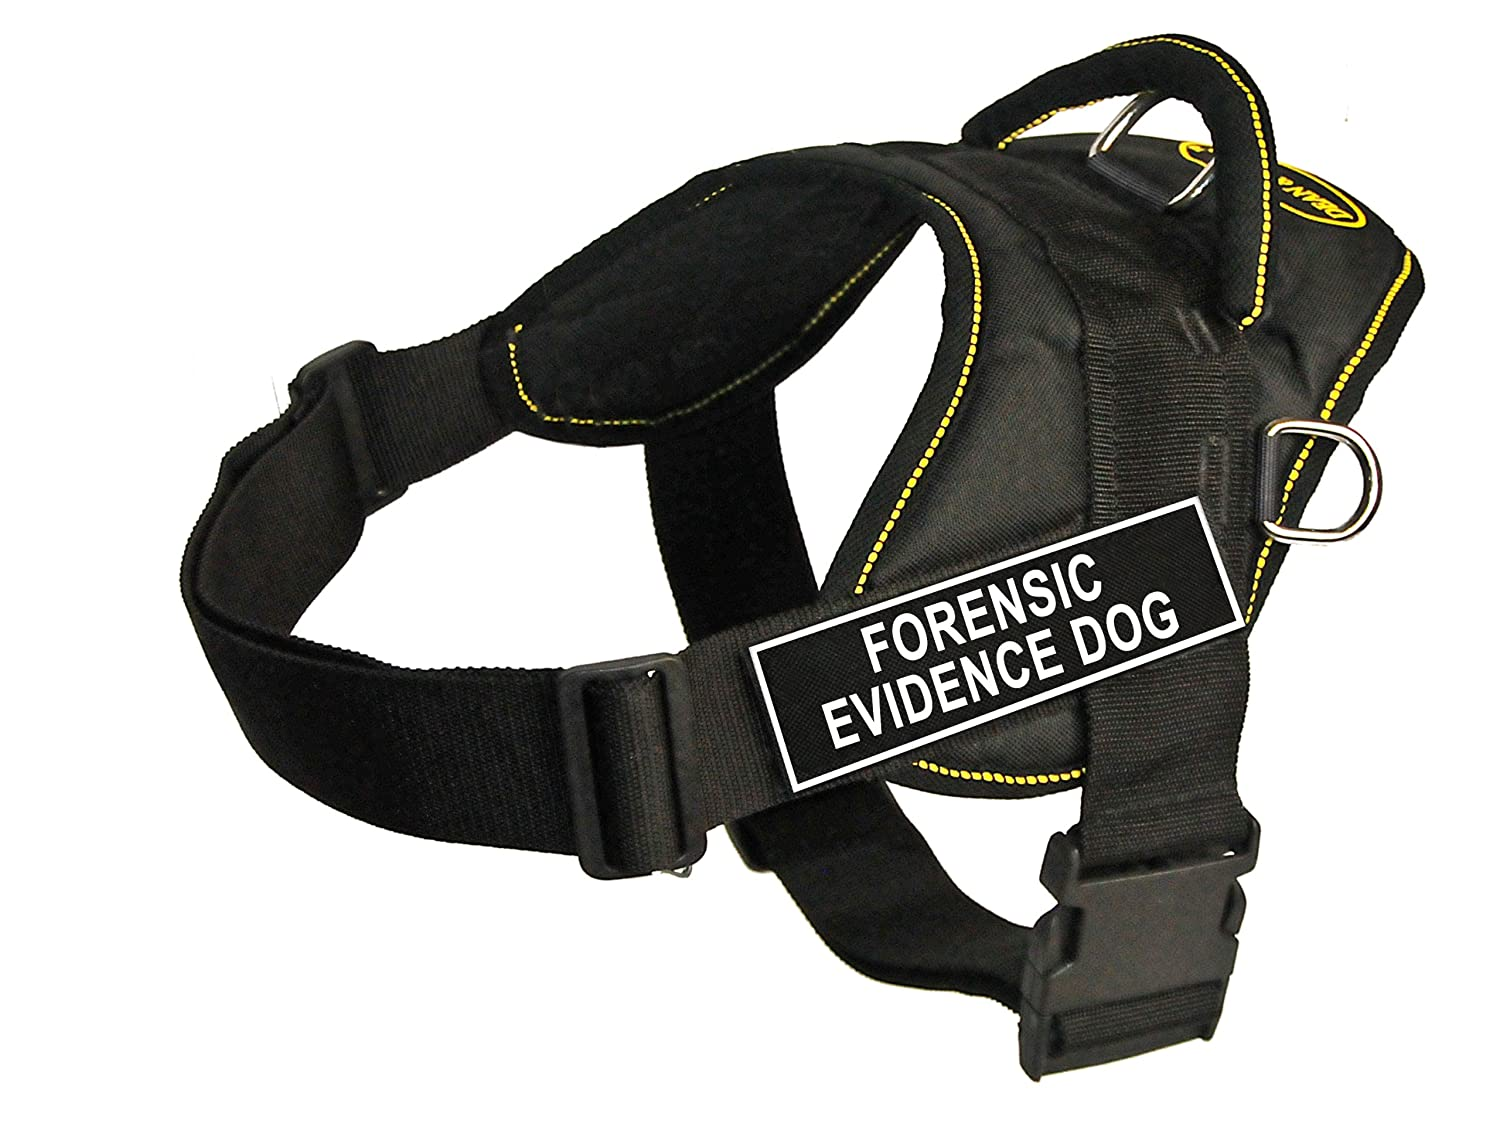 Dean & Tyler Fun Works 34-Inch to 47-Inch Pet Harness, X-Large, Forensic Evidence Dog, Black with Yellow Trim